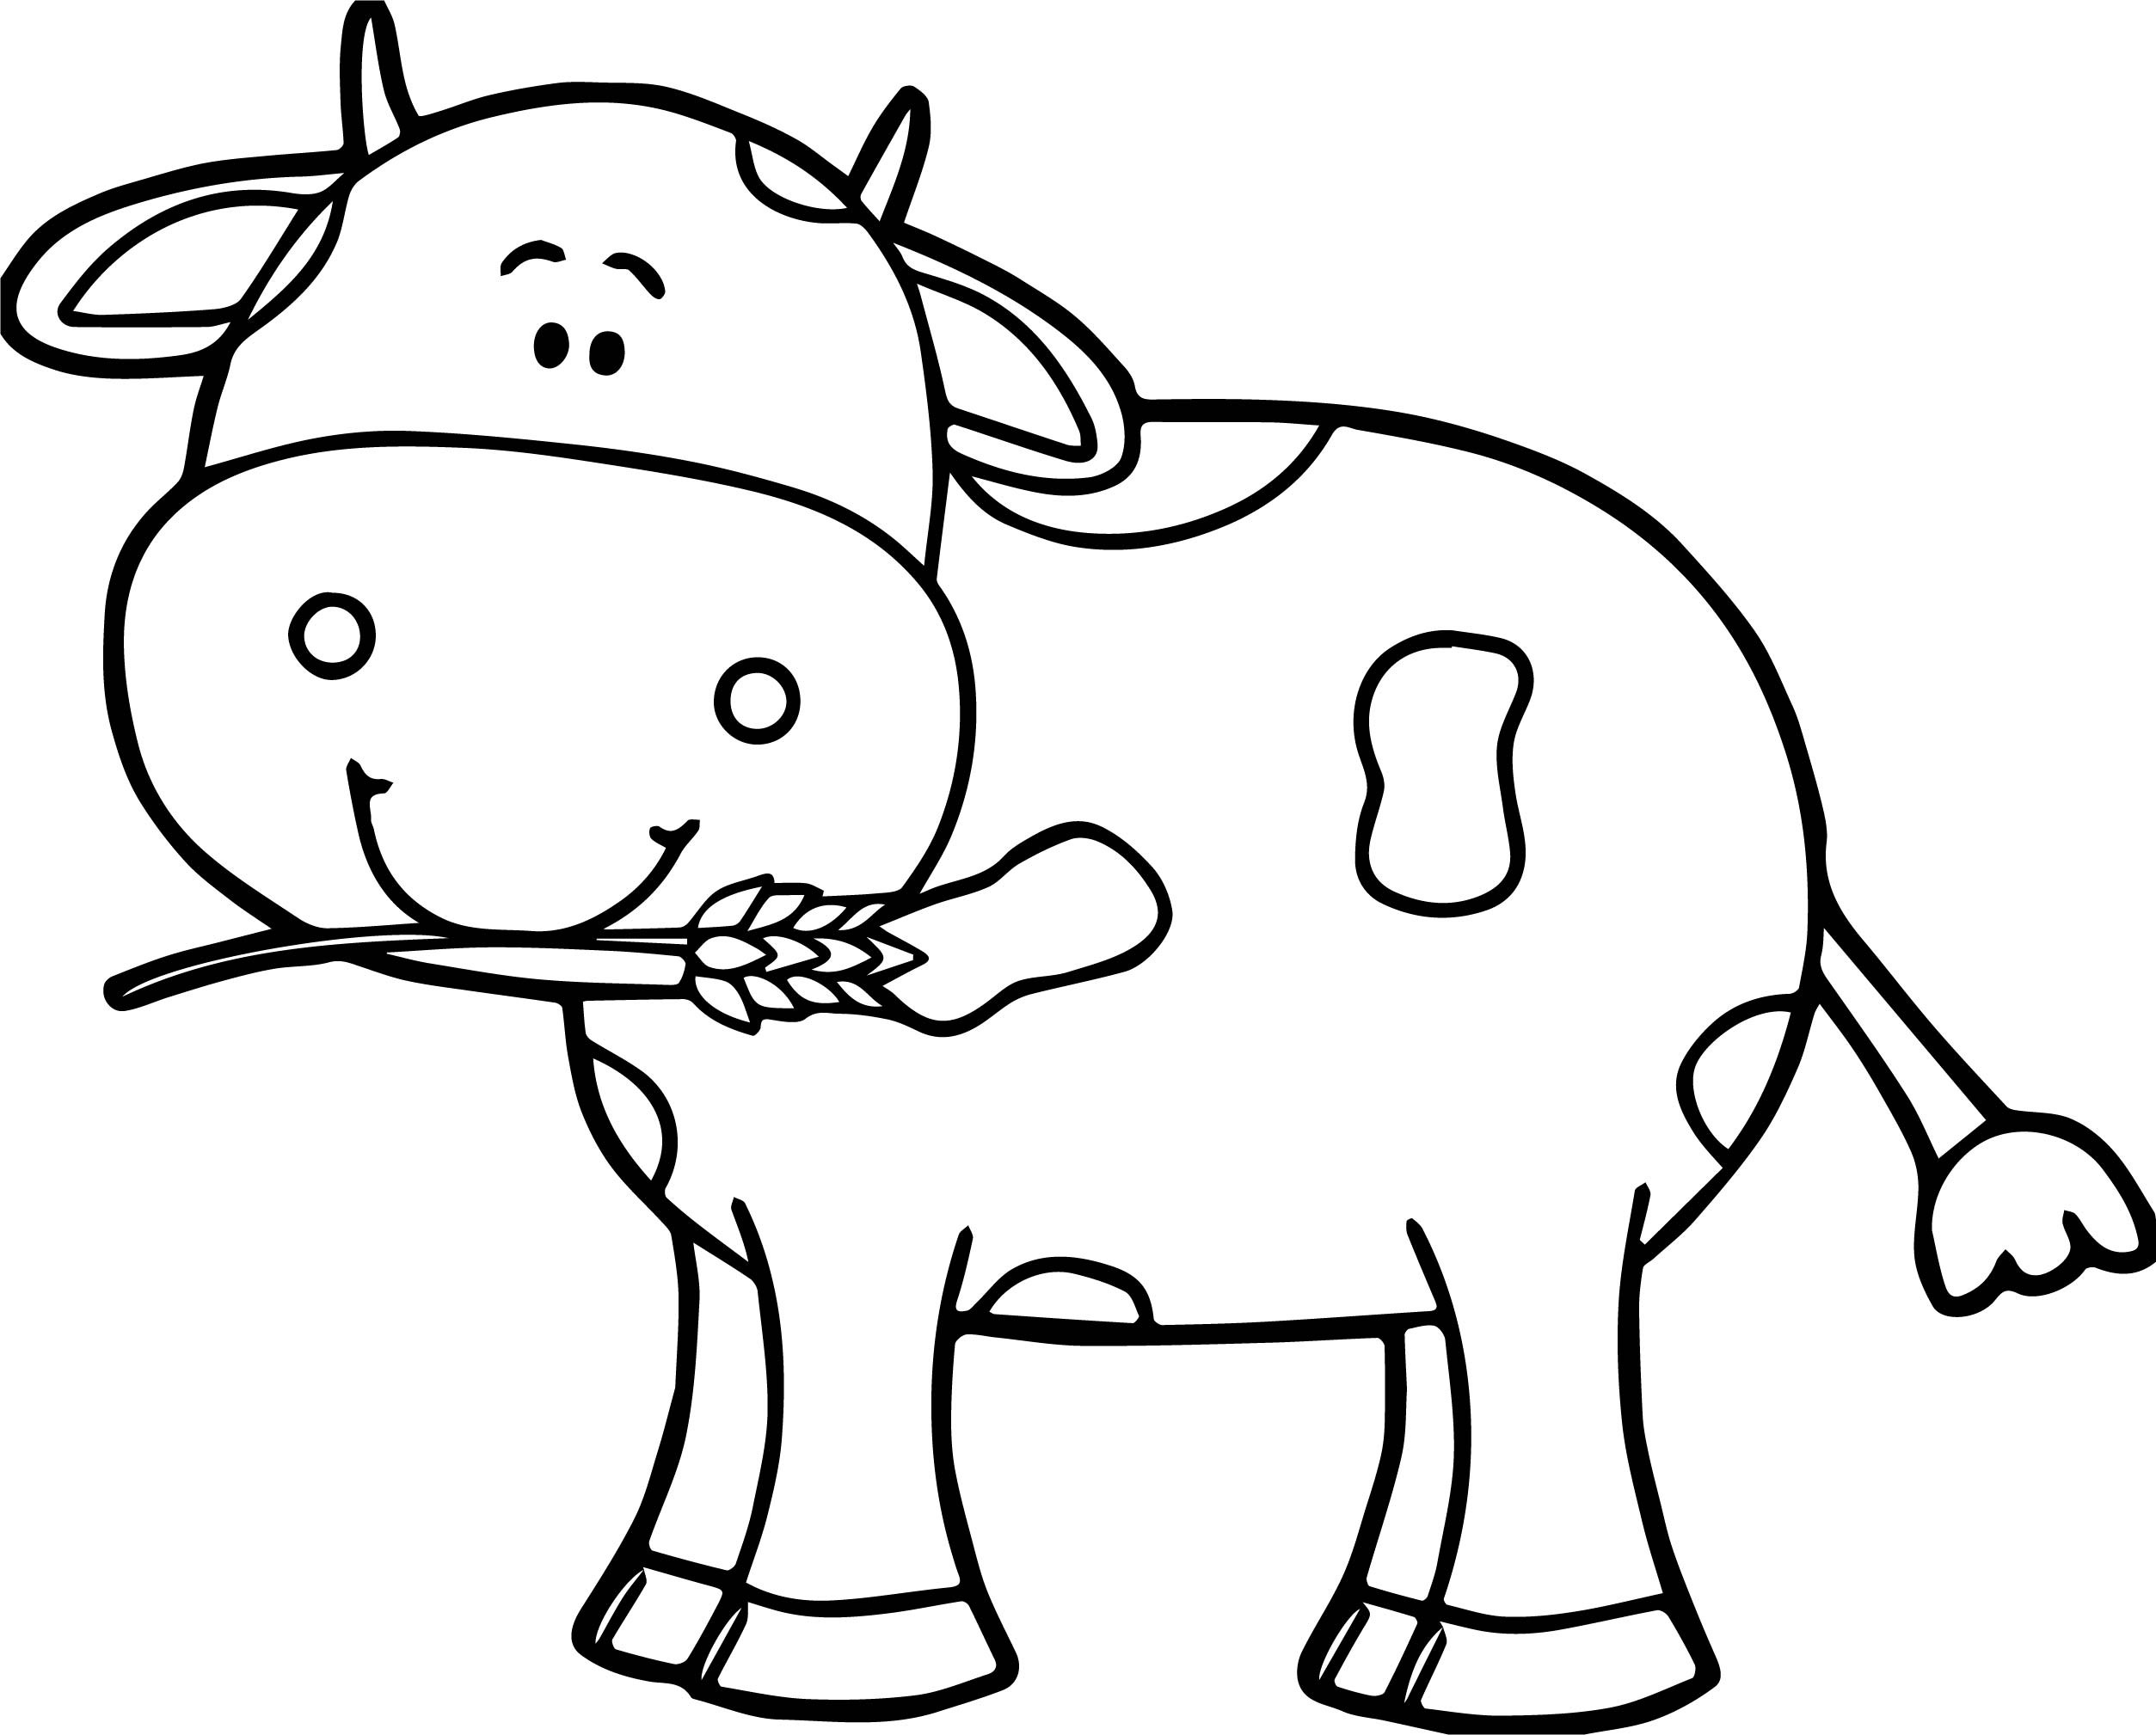 realistic cow coloring pages at getdrawings  free download